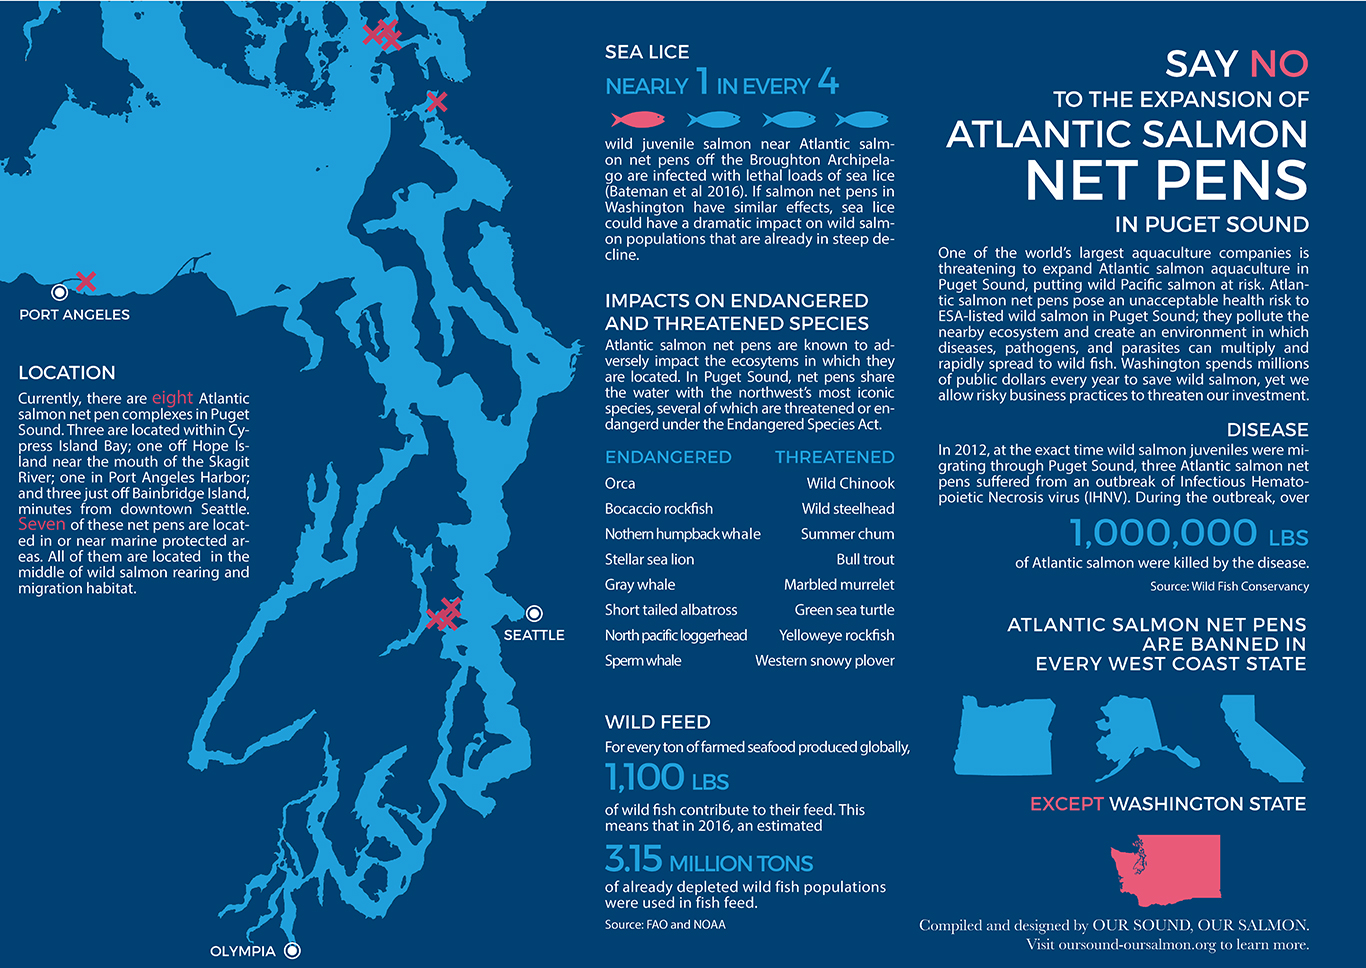 Say no to the expansion of Atlantic salmon net pens in Puget Sound